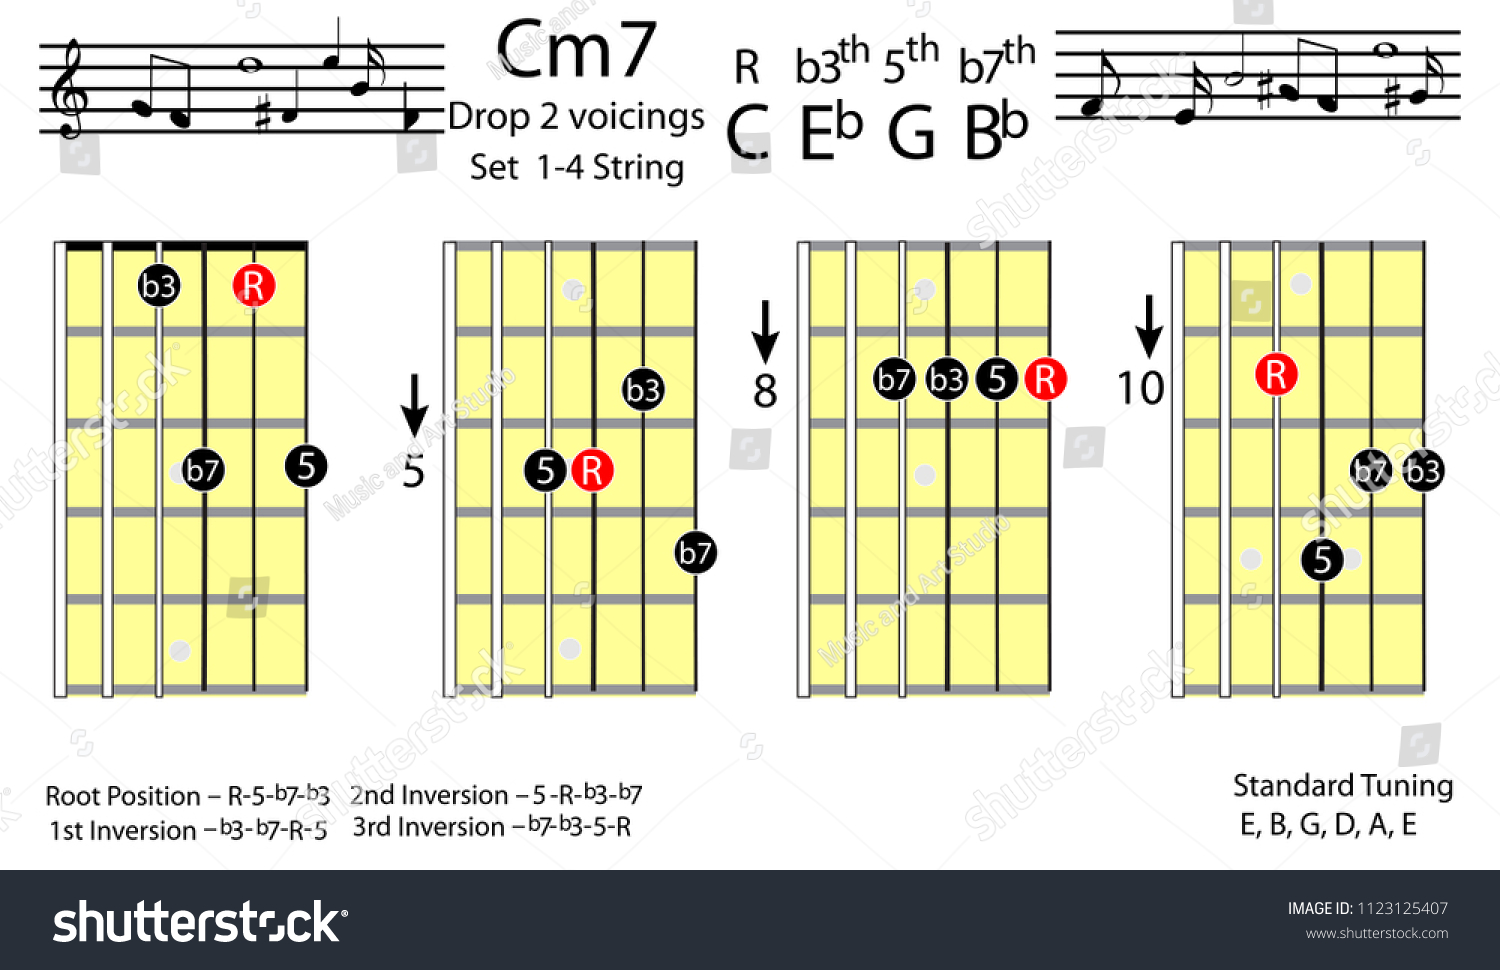 Guitar Chords C Minor 7 Drop 2 Voicing Chord Stock Vector Royalty